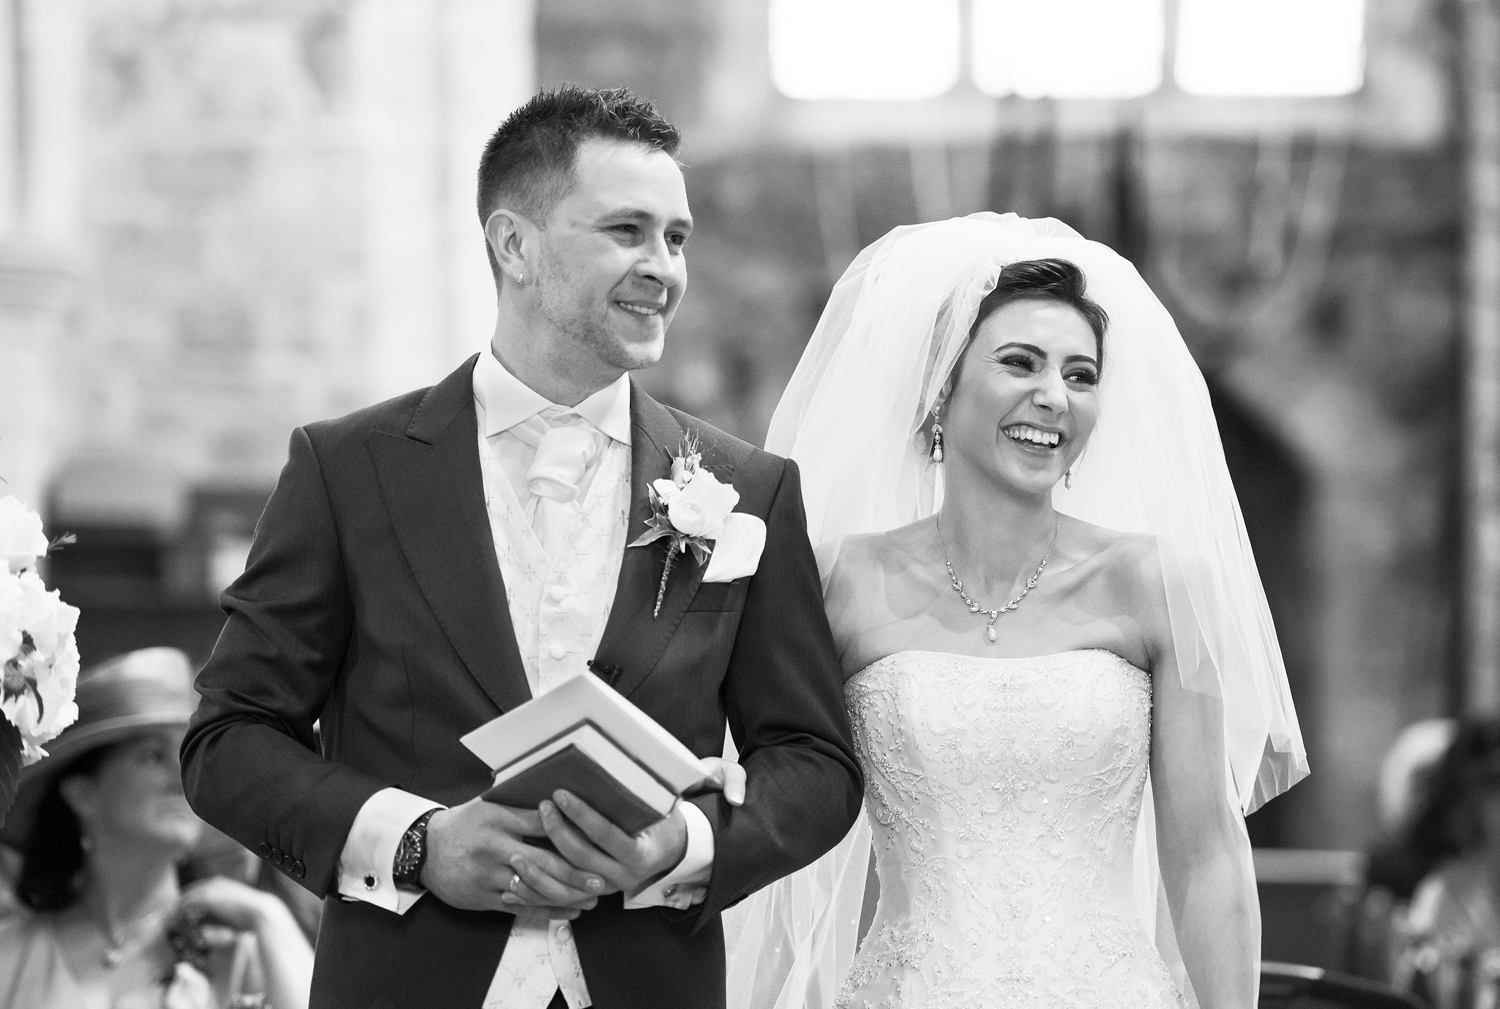 A wedding at St. Helens Church, Waddington in Lancashire